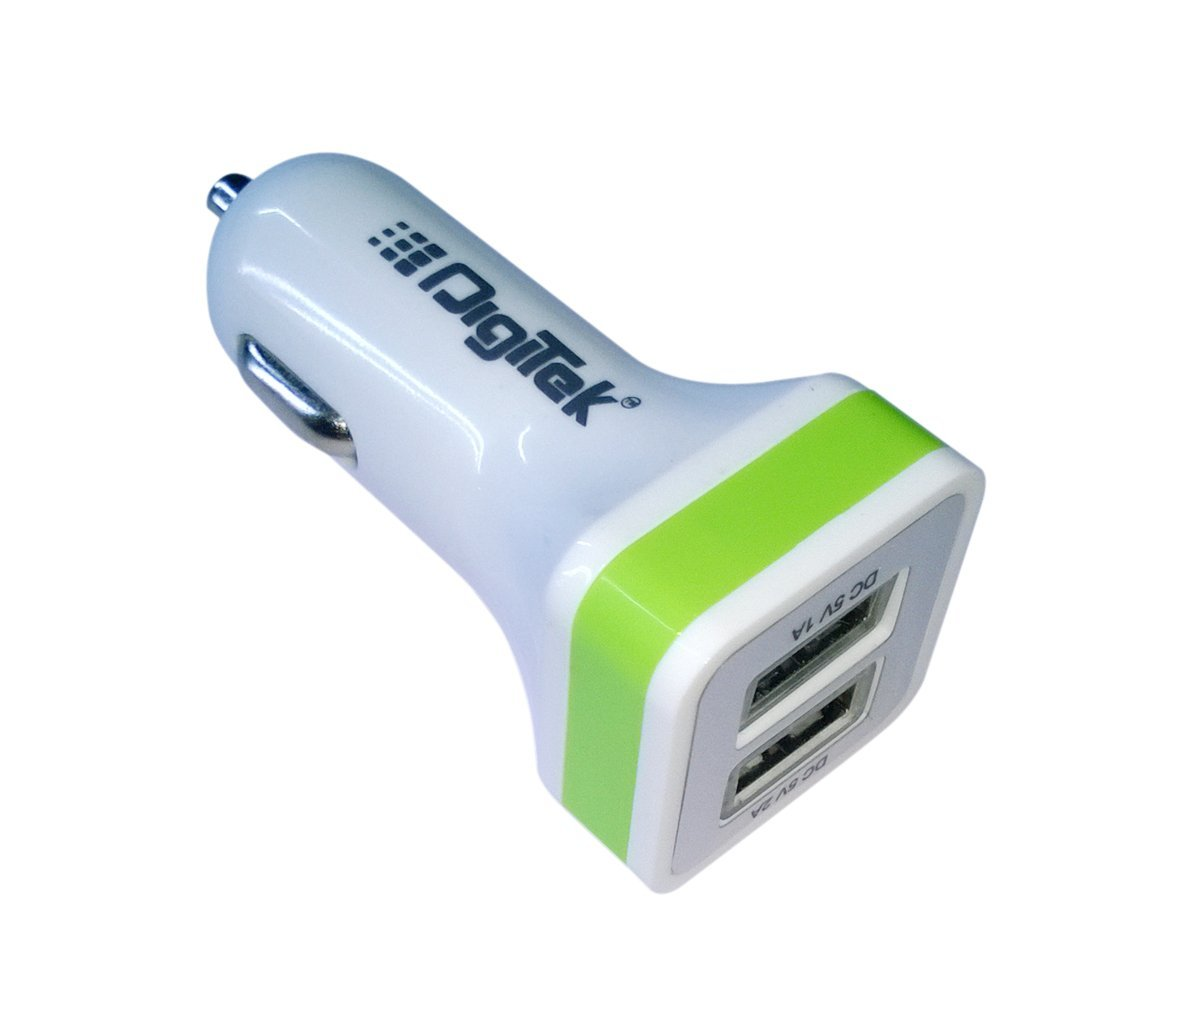 Dual Chargers For Iphone And Ipad